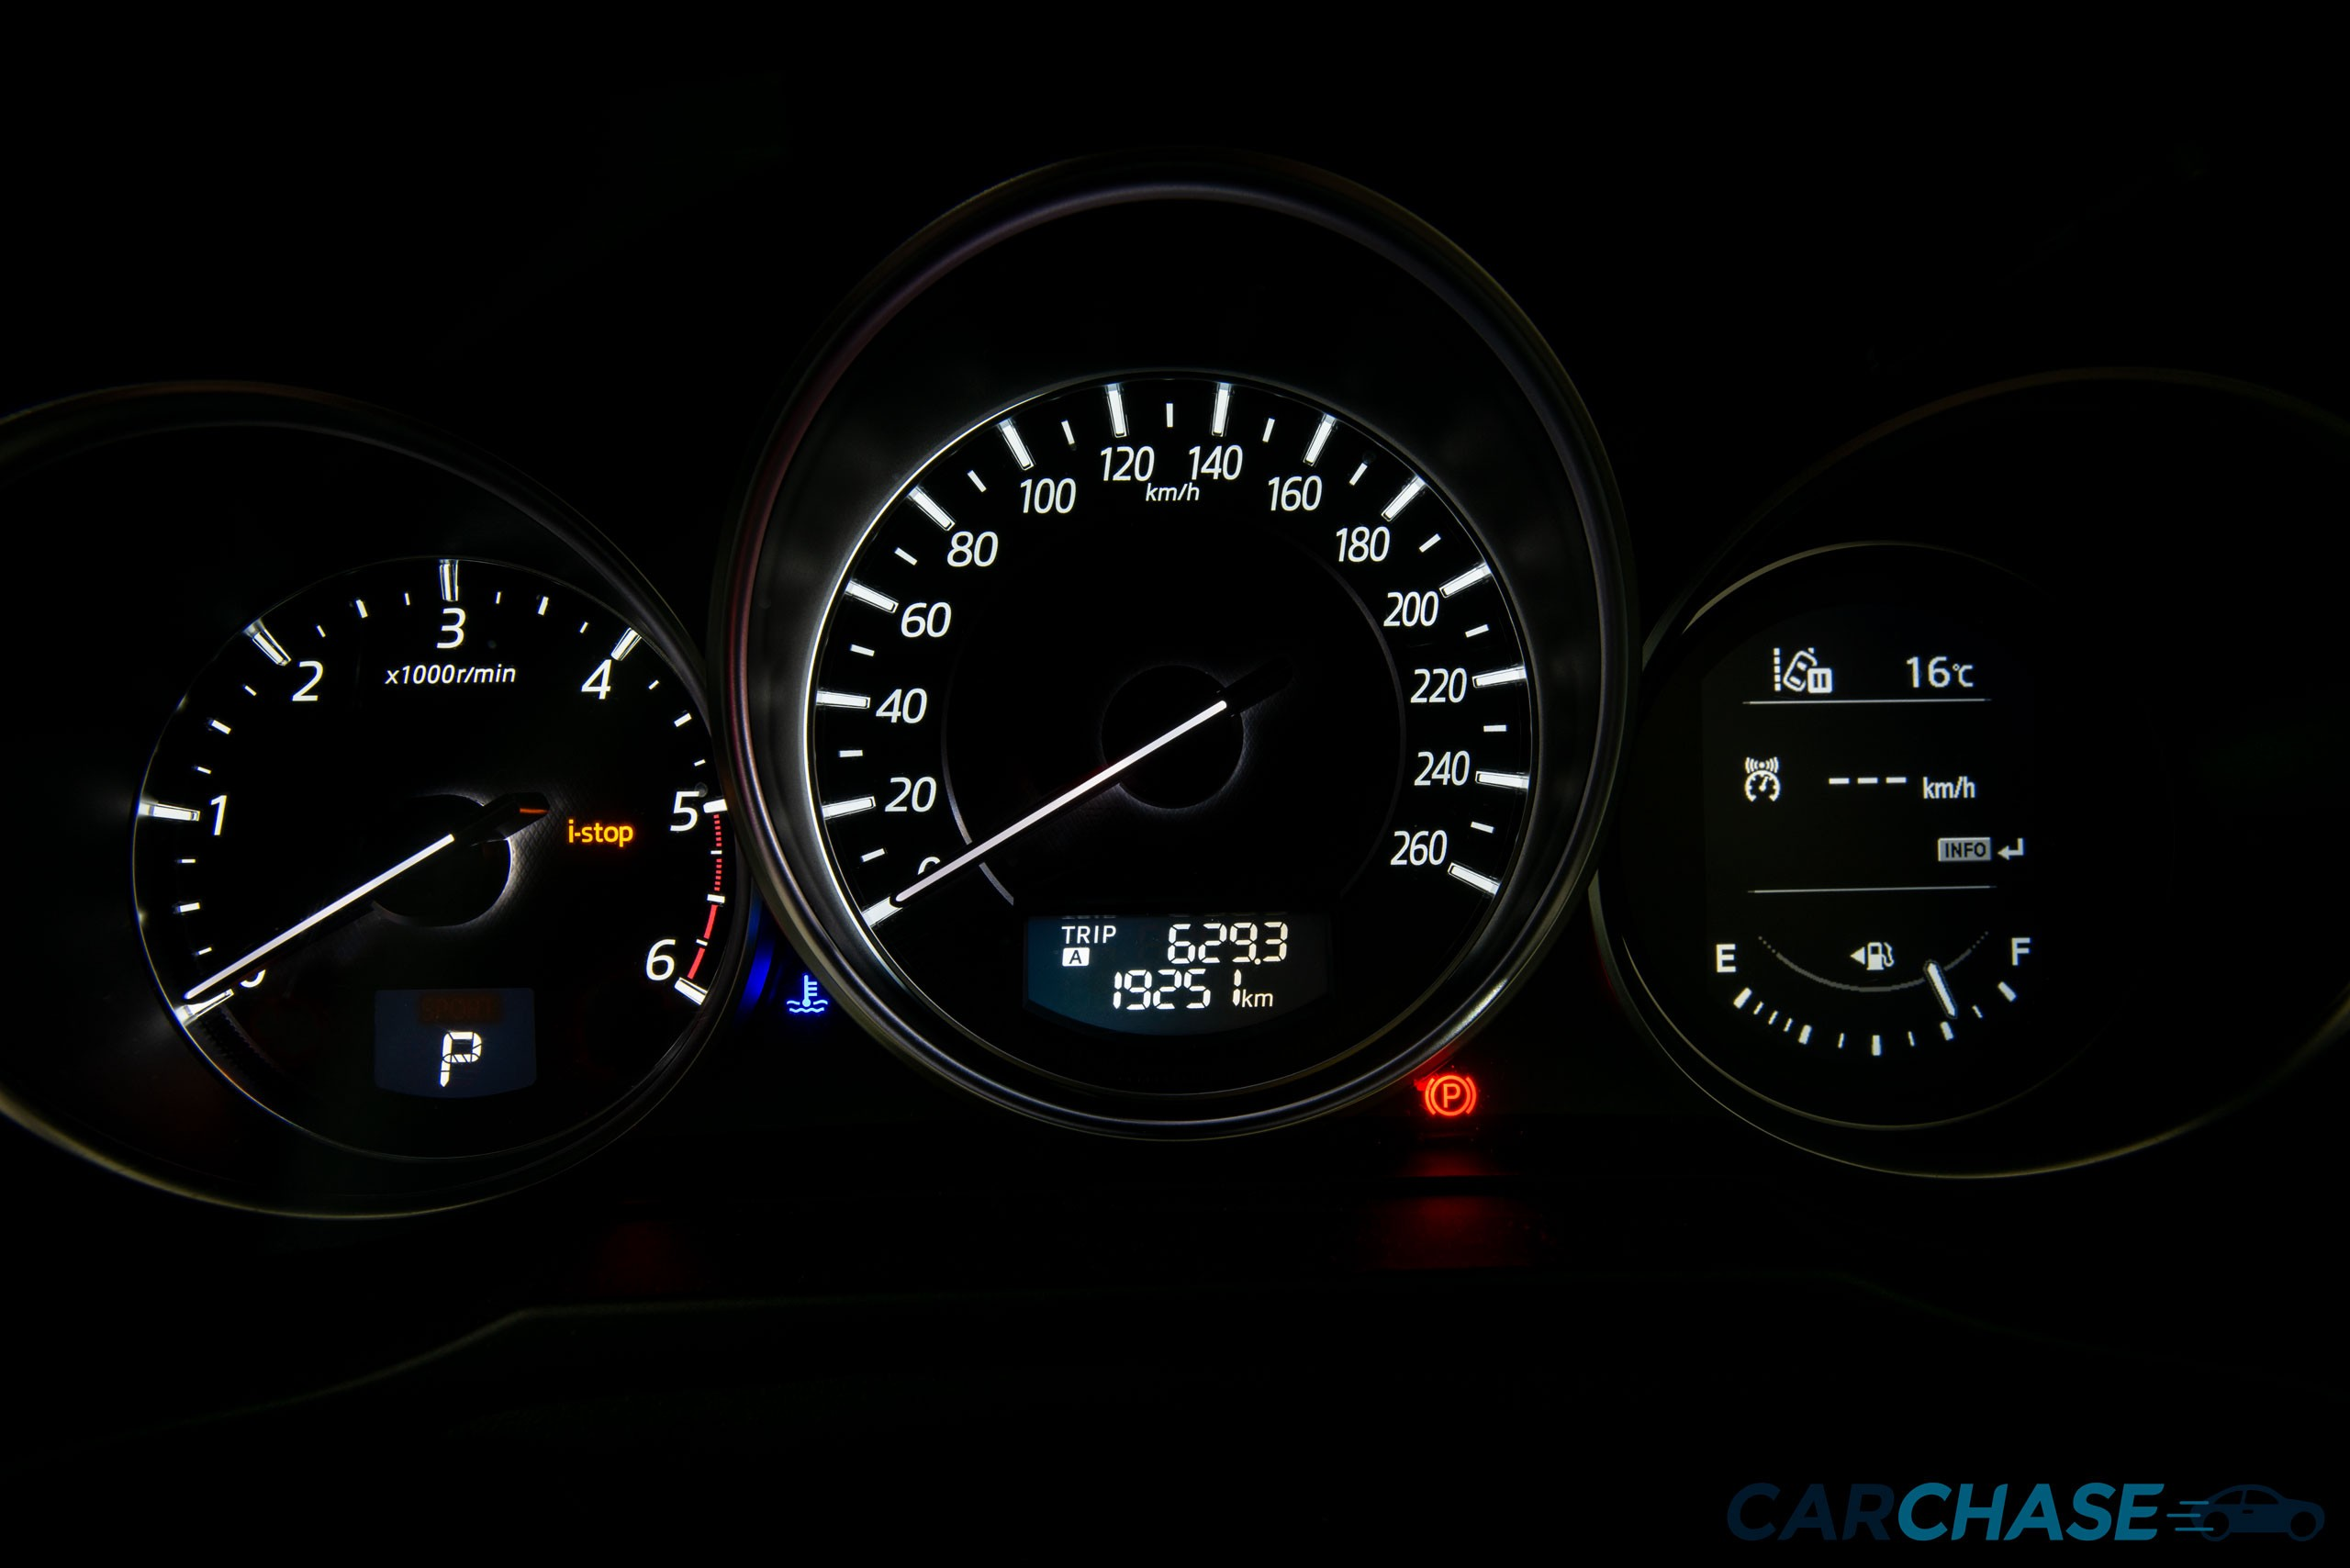 Image of dials profile of 2015 Mazda 6 Atenza